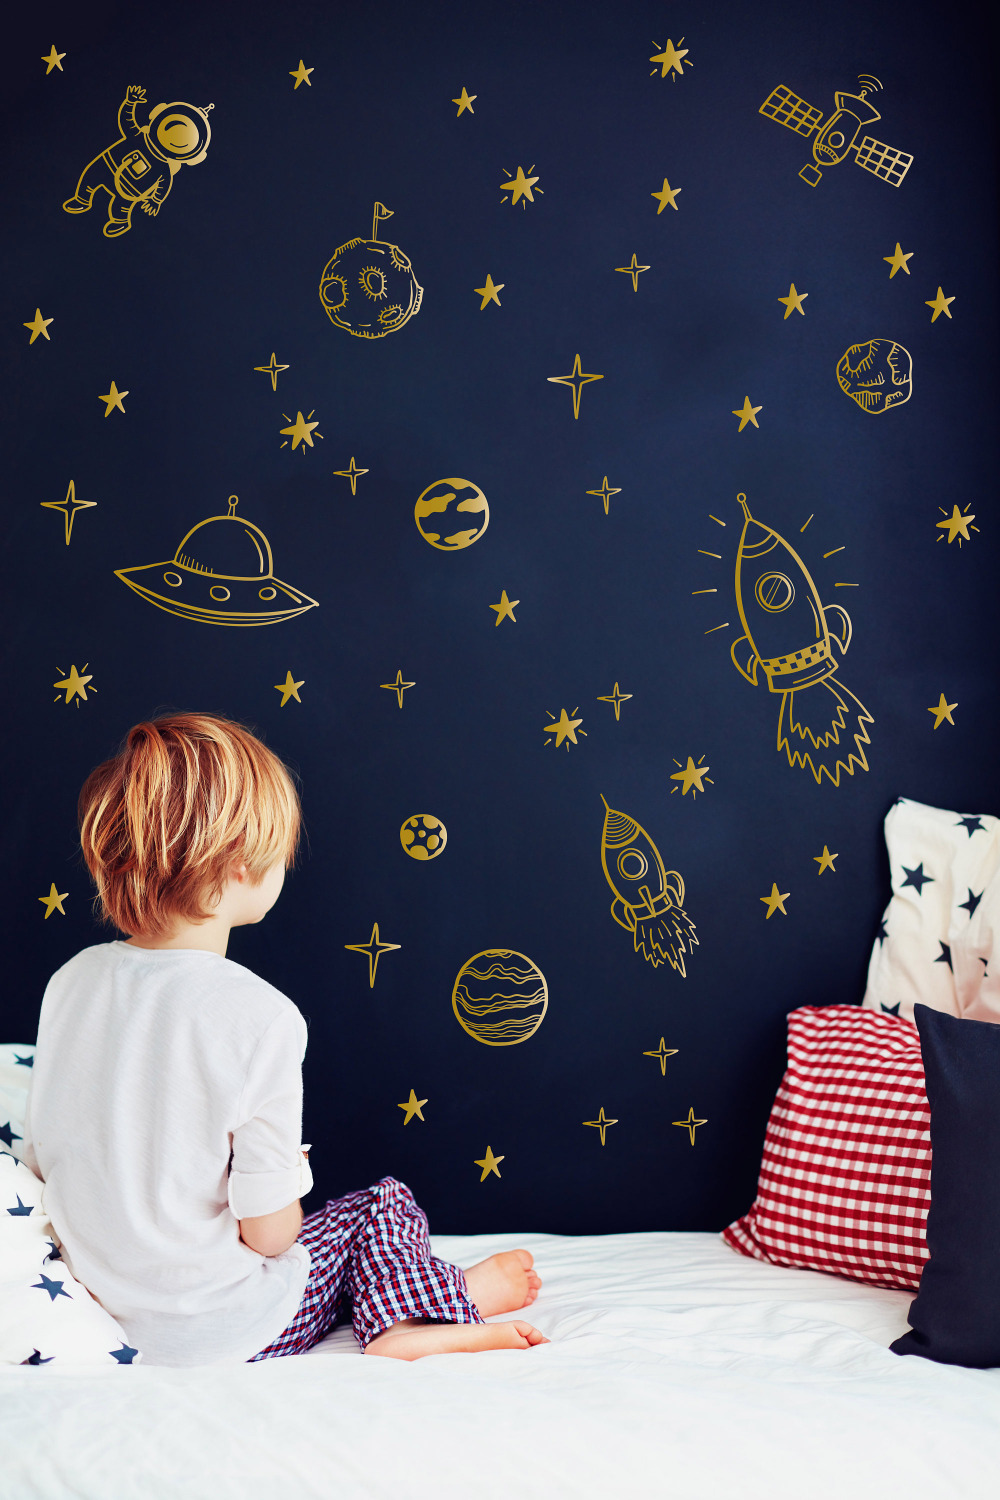 Design Outer Space Wall Decals space wall decals for boy room outer nursery sticker decor rocket ship astronaut vinyl decal planet kids zb163 in